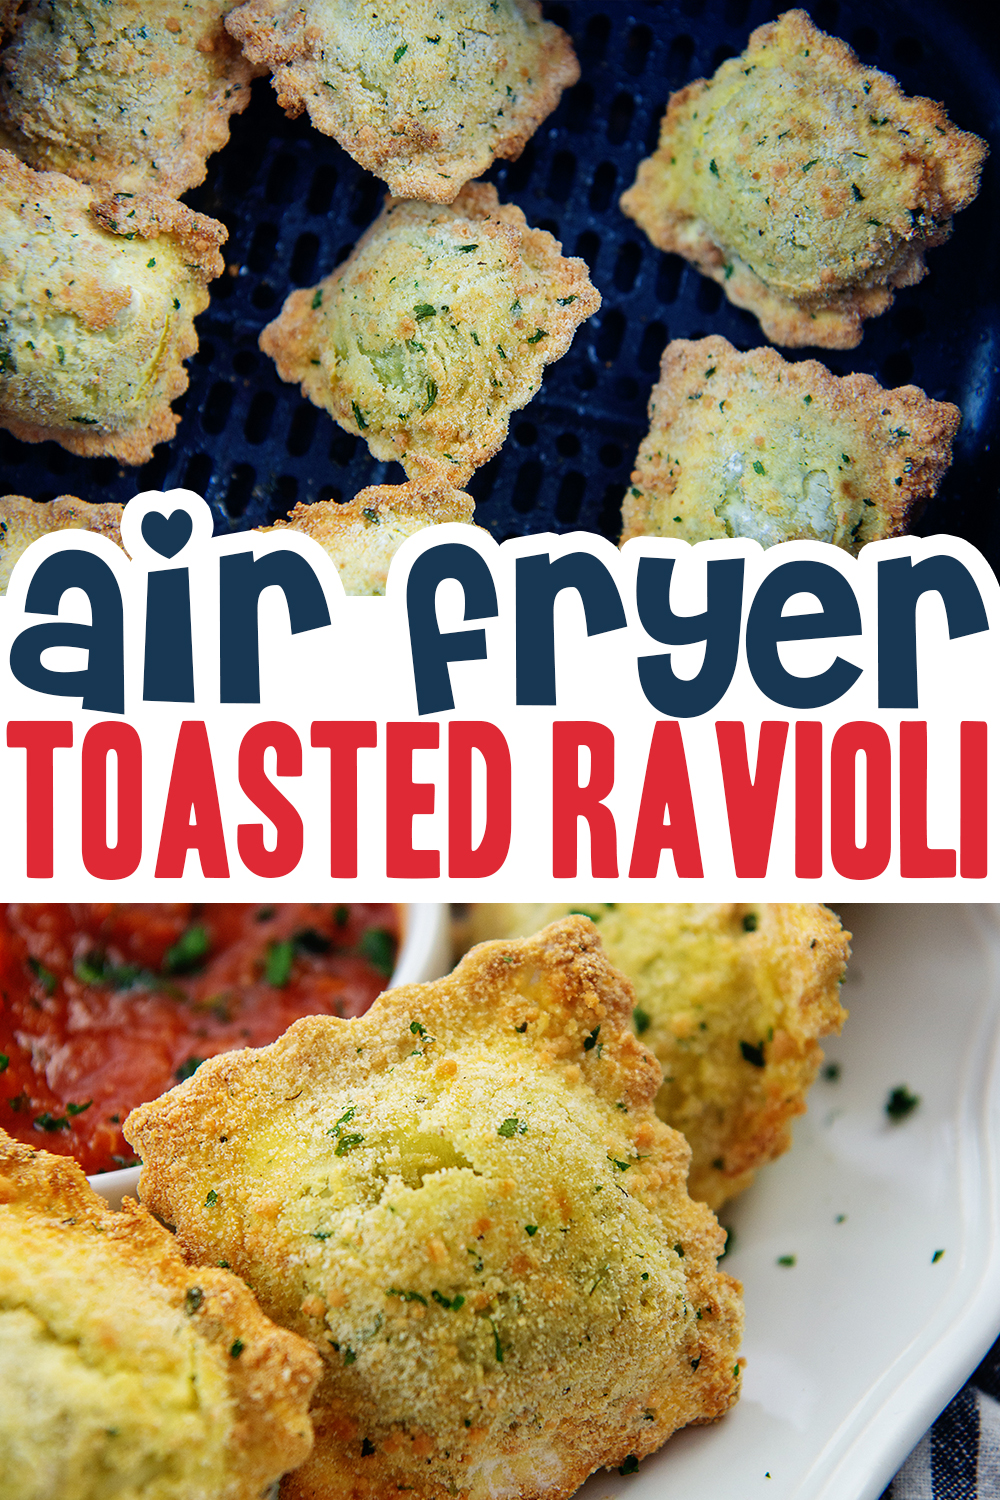 Toasted Ravioli is the ultimate snack or appetizer! Make it at home in the air fryer in about 10 minutes.